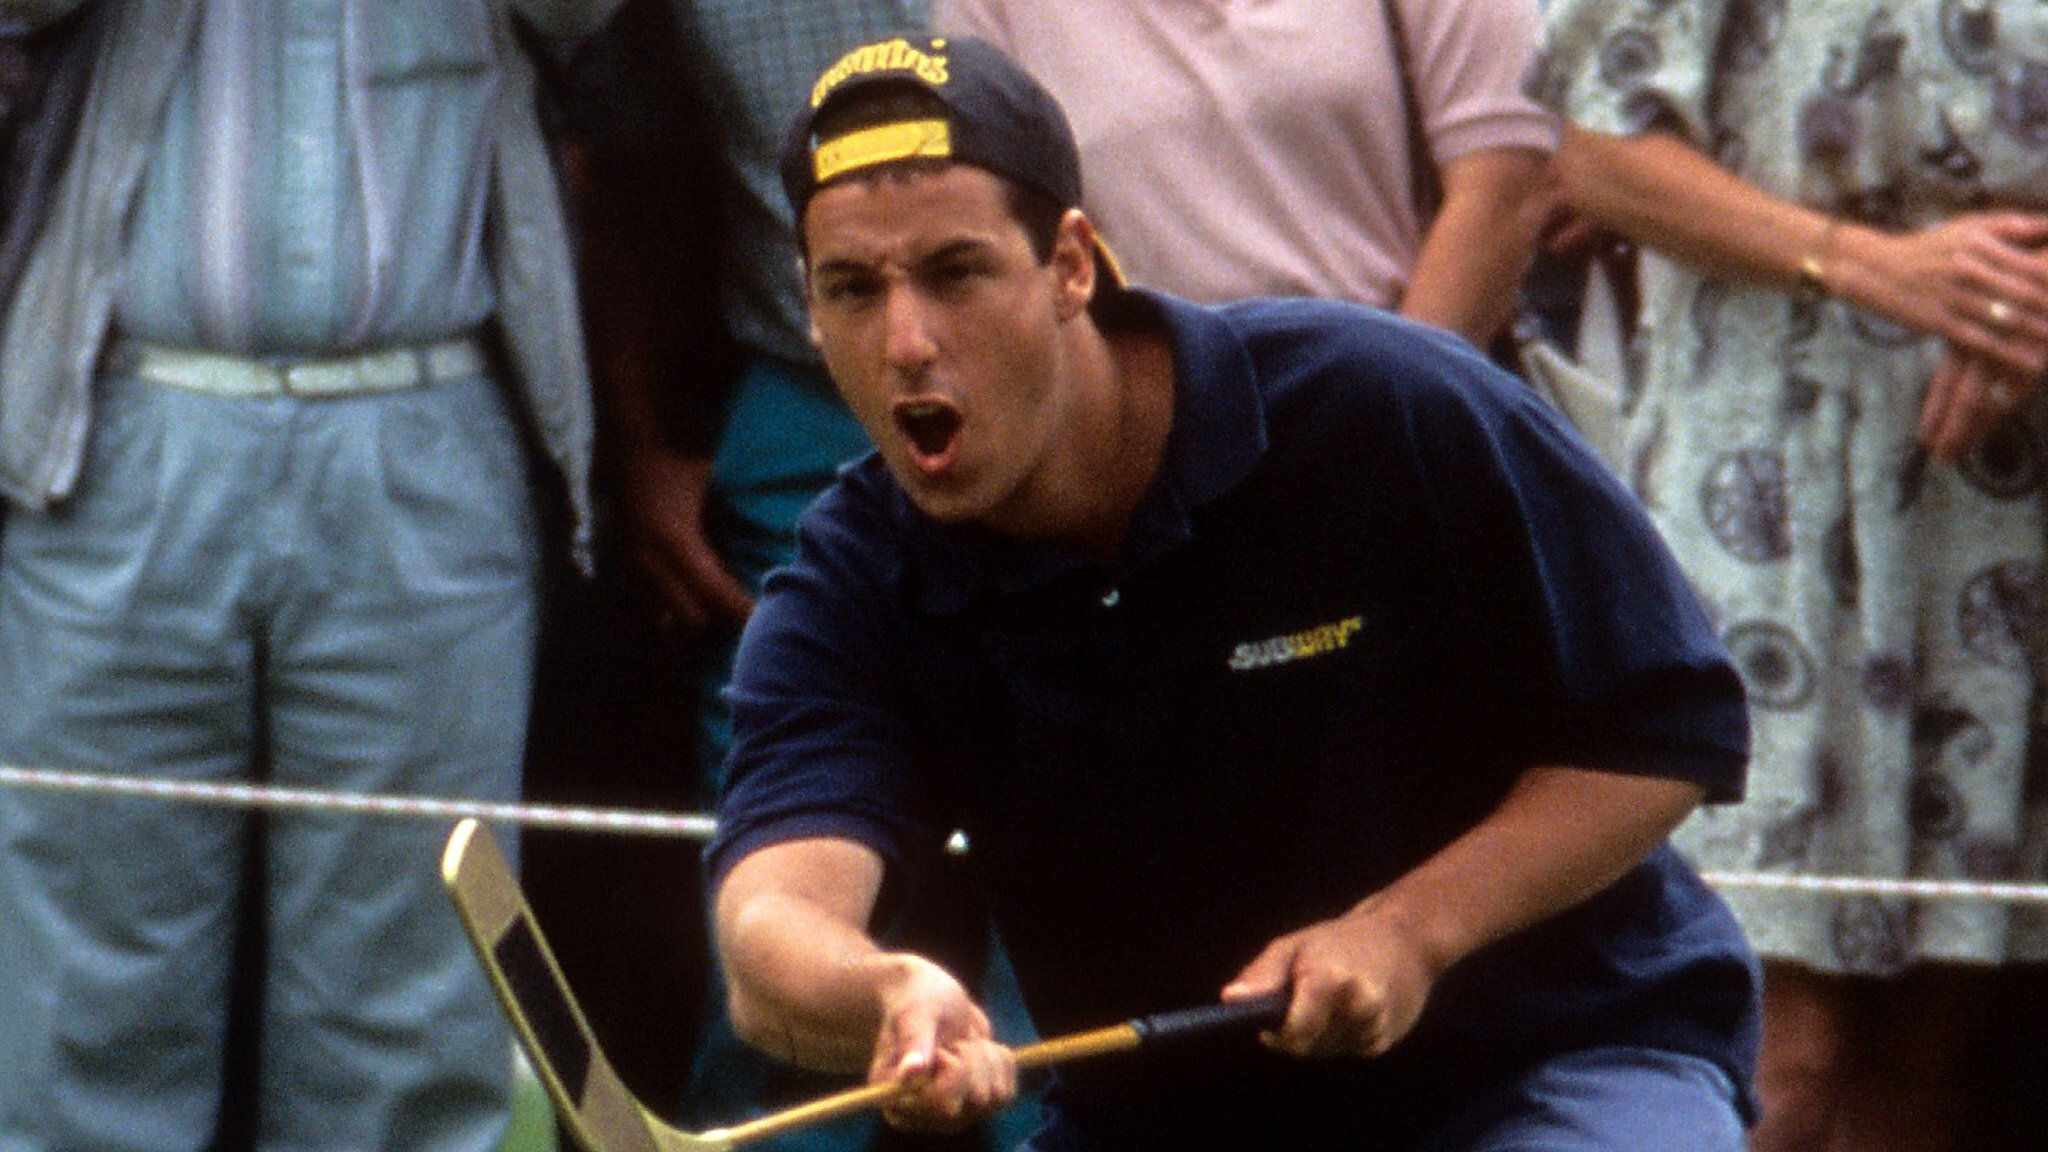 My longest drive this year is 425 yards: Meet the real life Happy Gilmore